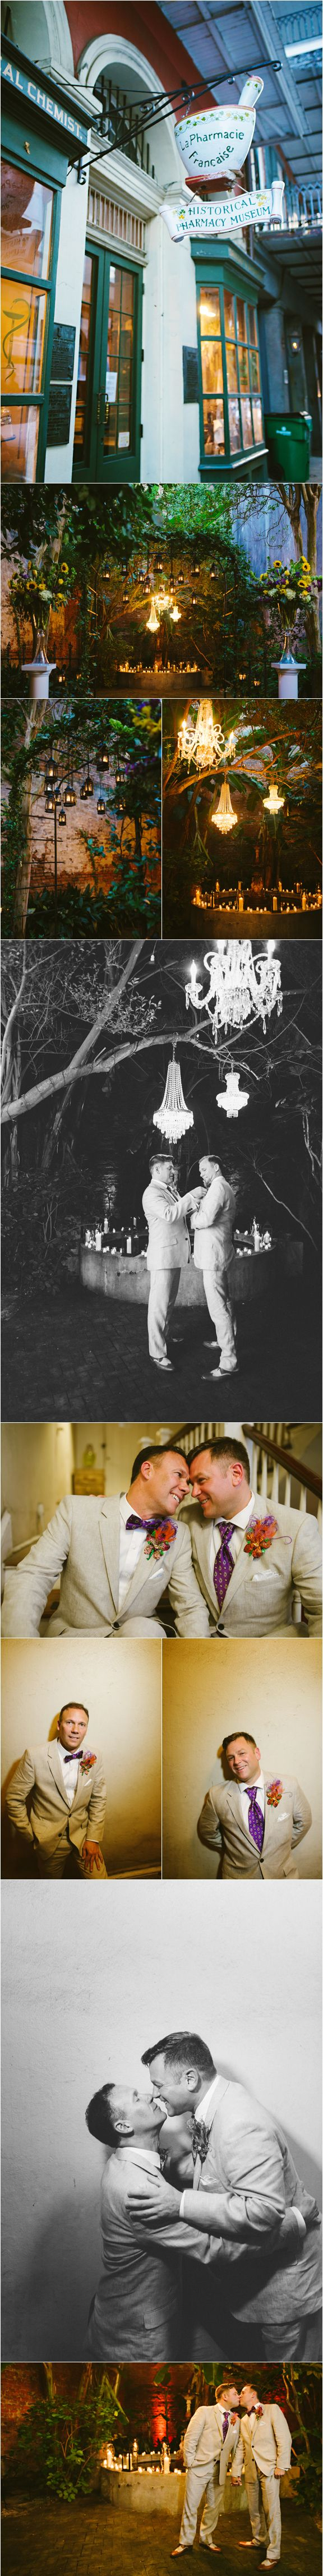 Christopher and Cliff's New Orleans Wedding at the historical Pharmacy Museum (Dark Roux Photography) - See more: http://darkroux.com/new-orleans-wedding-pharmacy-museum-christopher-cliff/